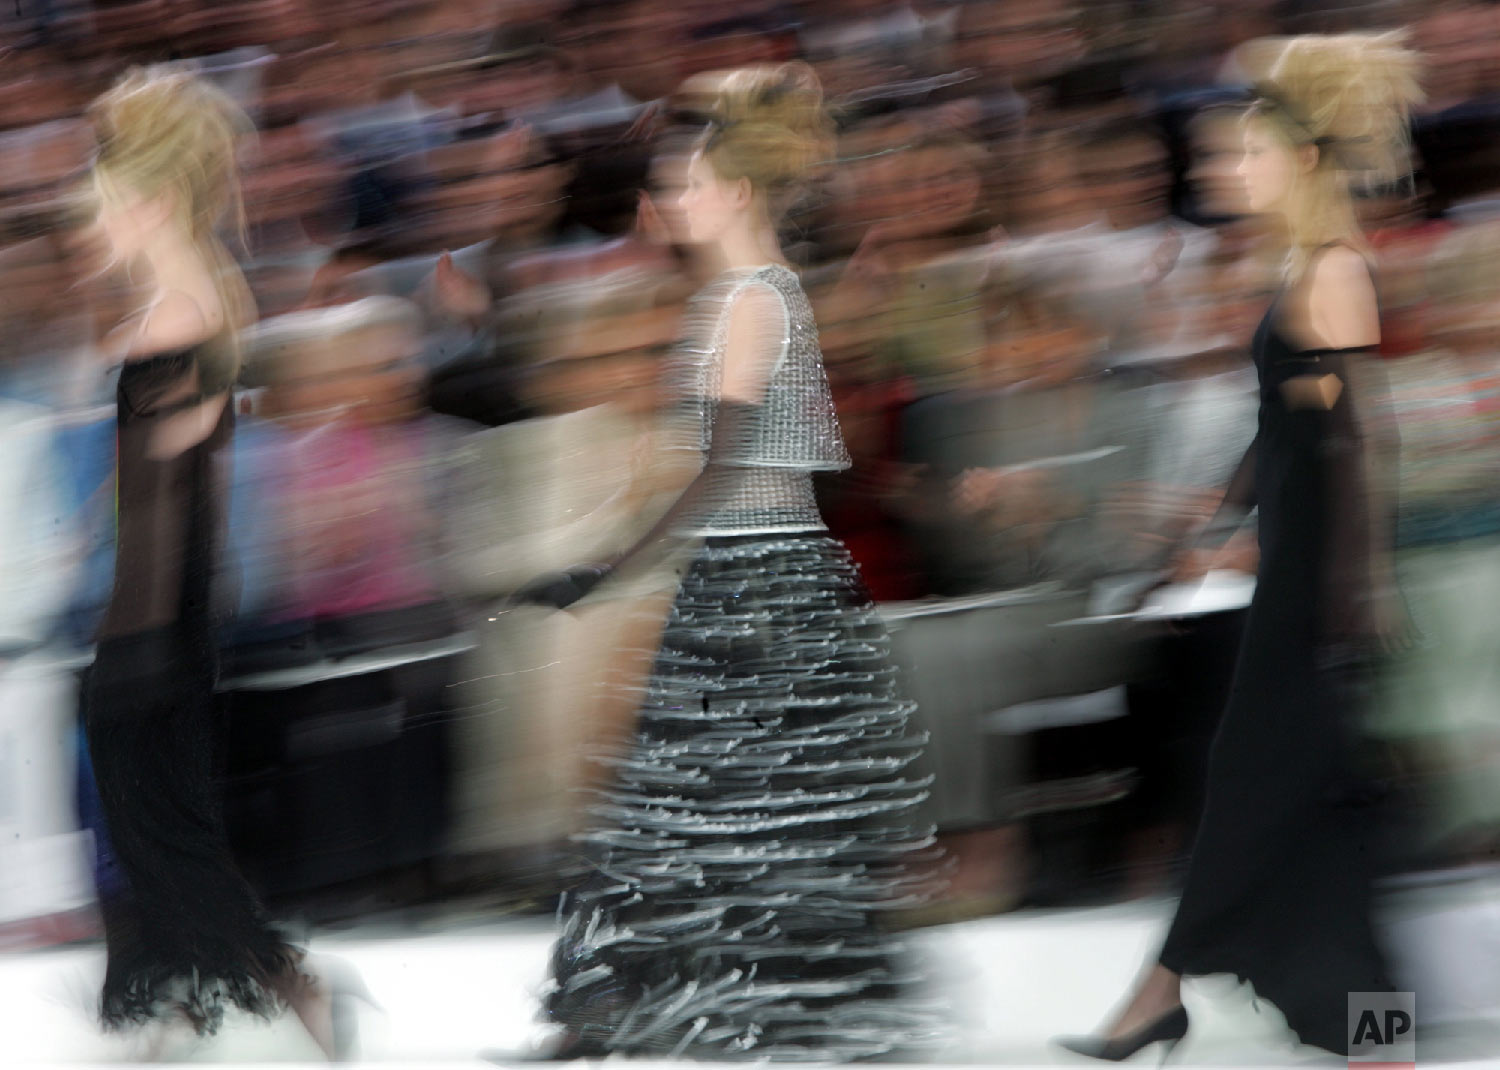 Models present creations for Chanel's fall-winter 2005-2006 haute-couture collection designed by German fashion designer Karl Lagerfeld and presented in Paris, July 7, 2005. (AP Photo/Jerome Delay)